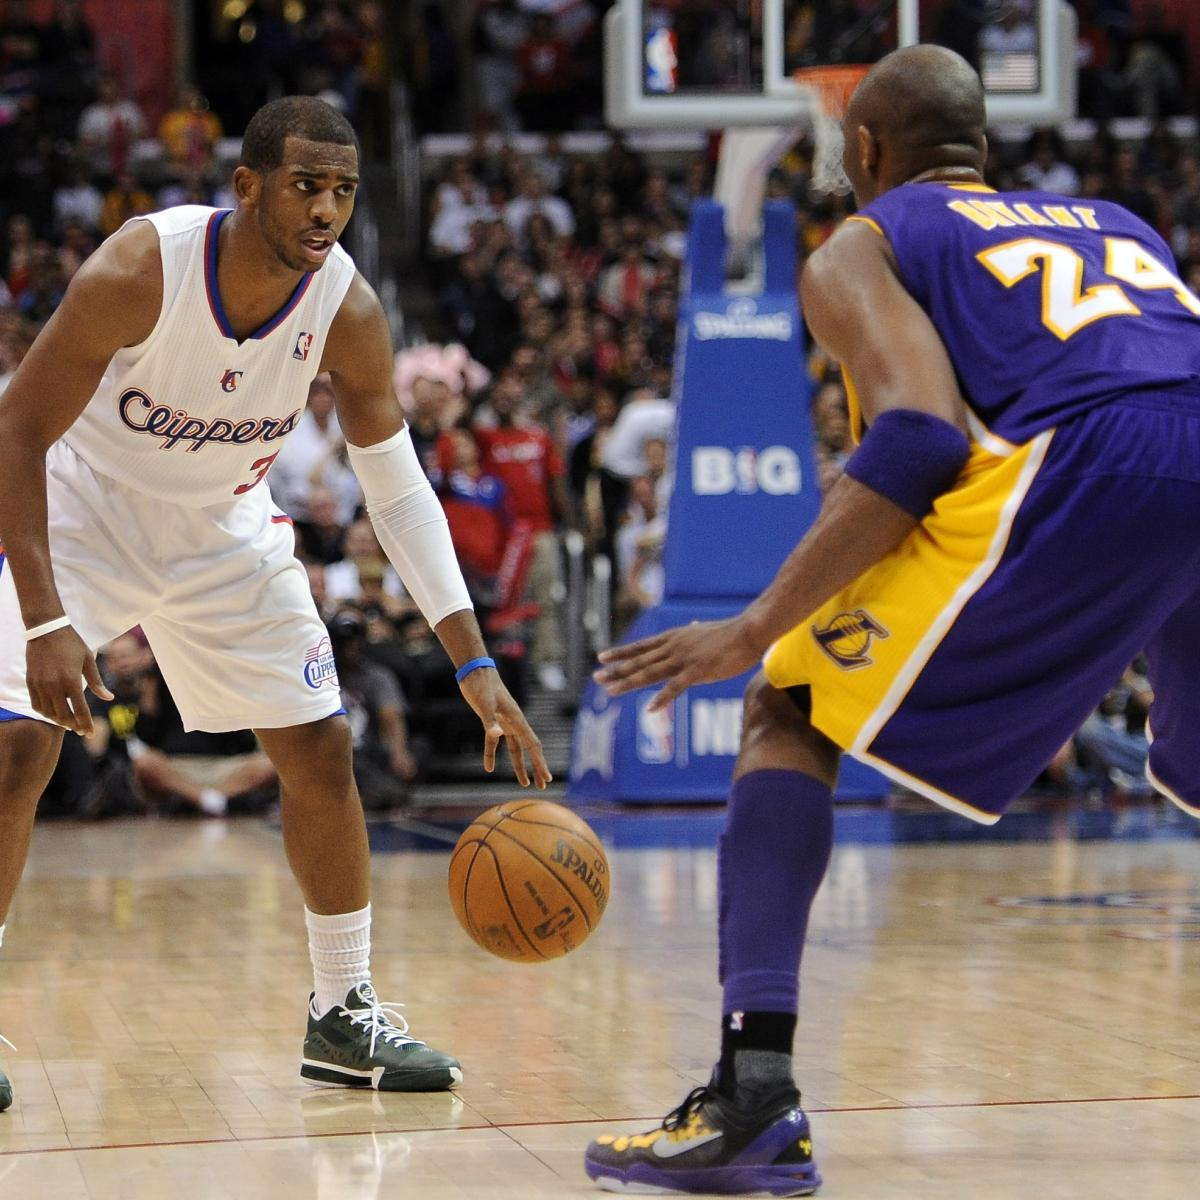 L.A. Clippers Vs. L.A. Lakers: Preview, Analysis And